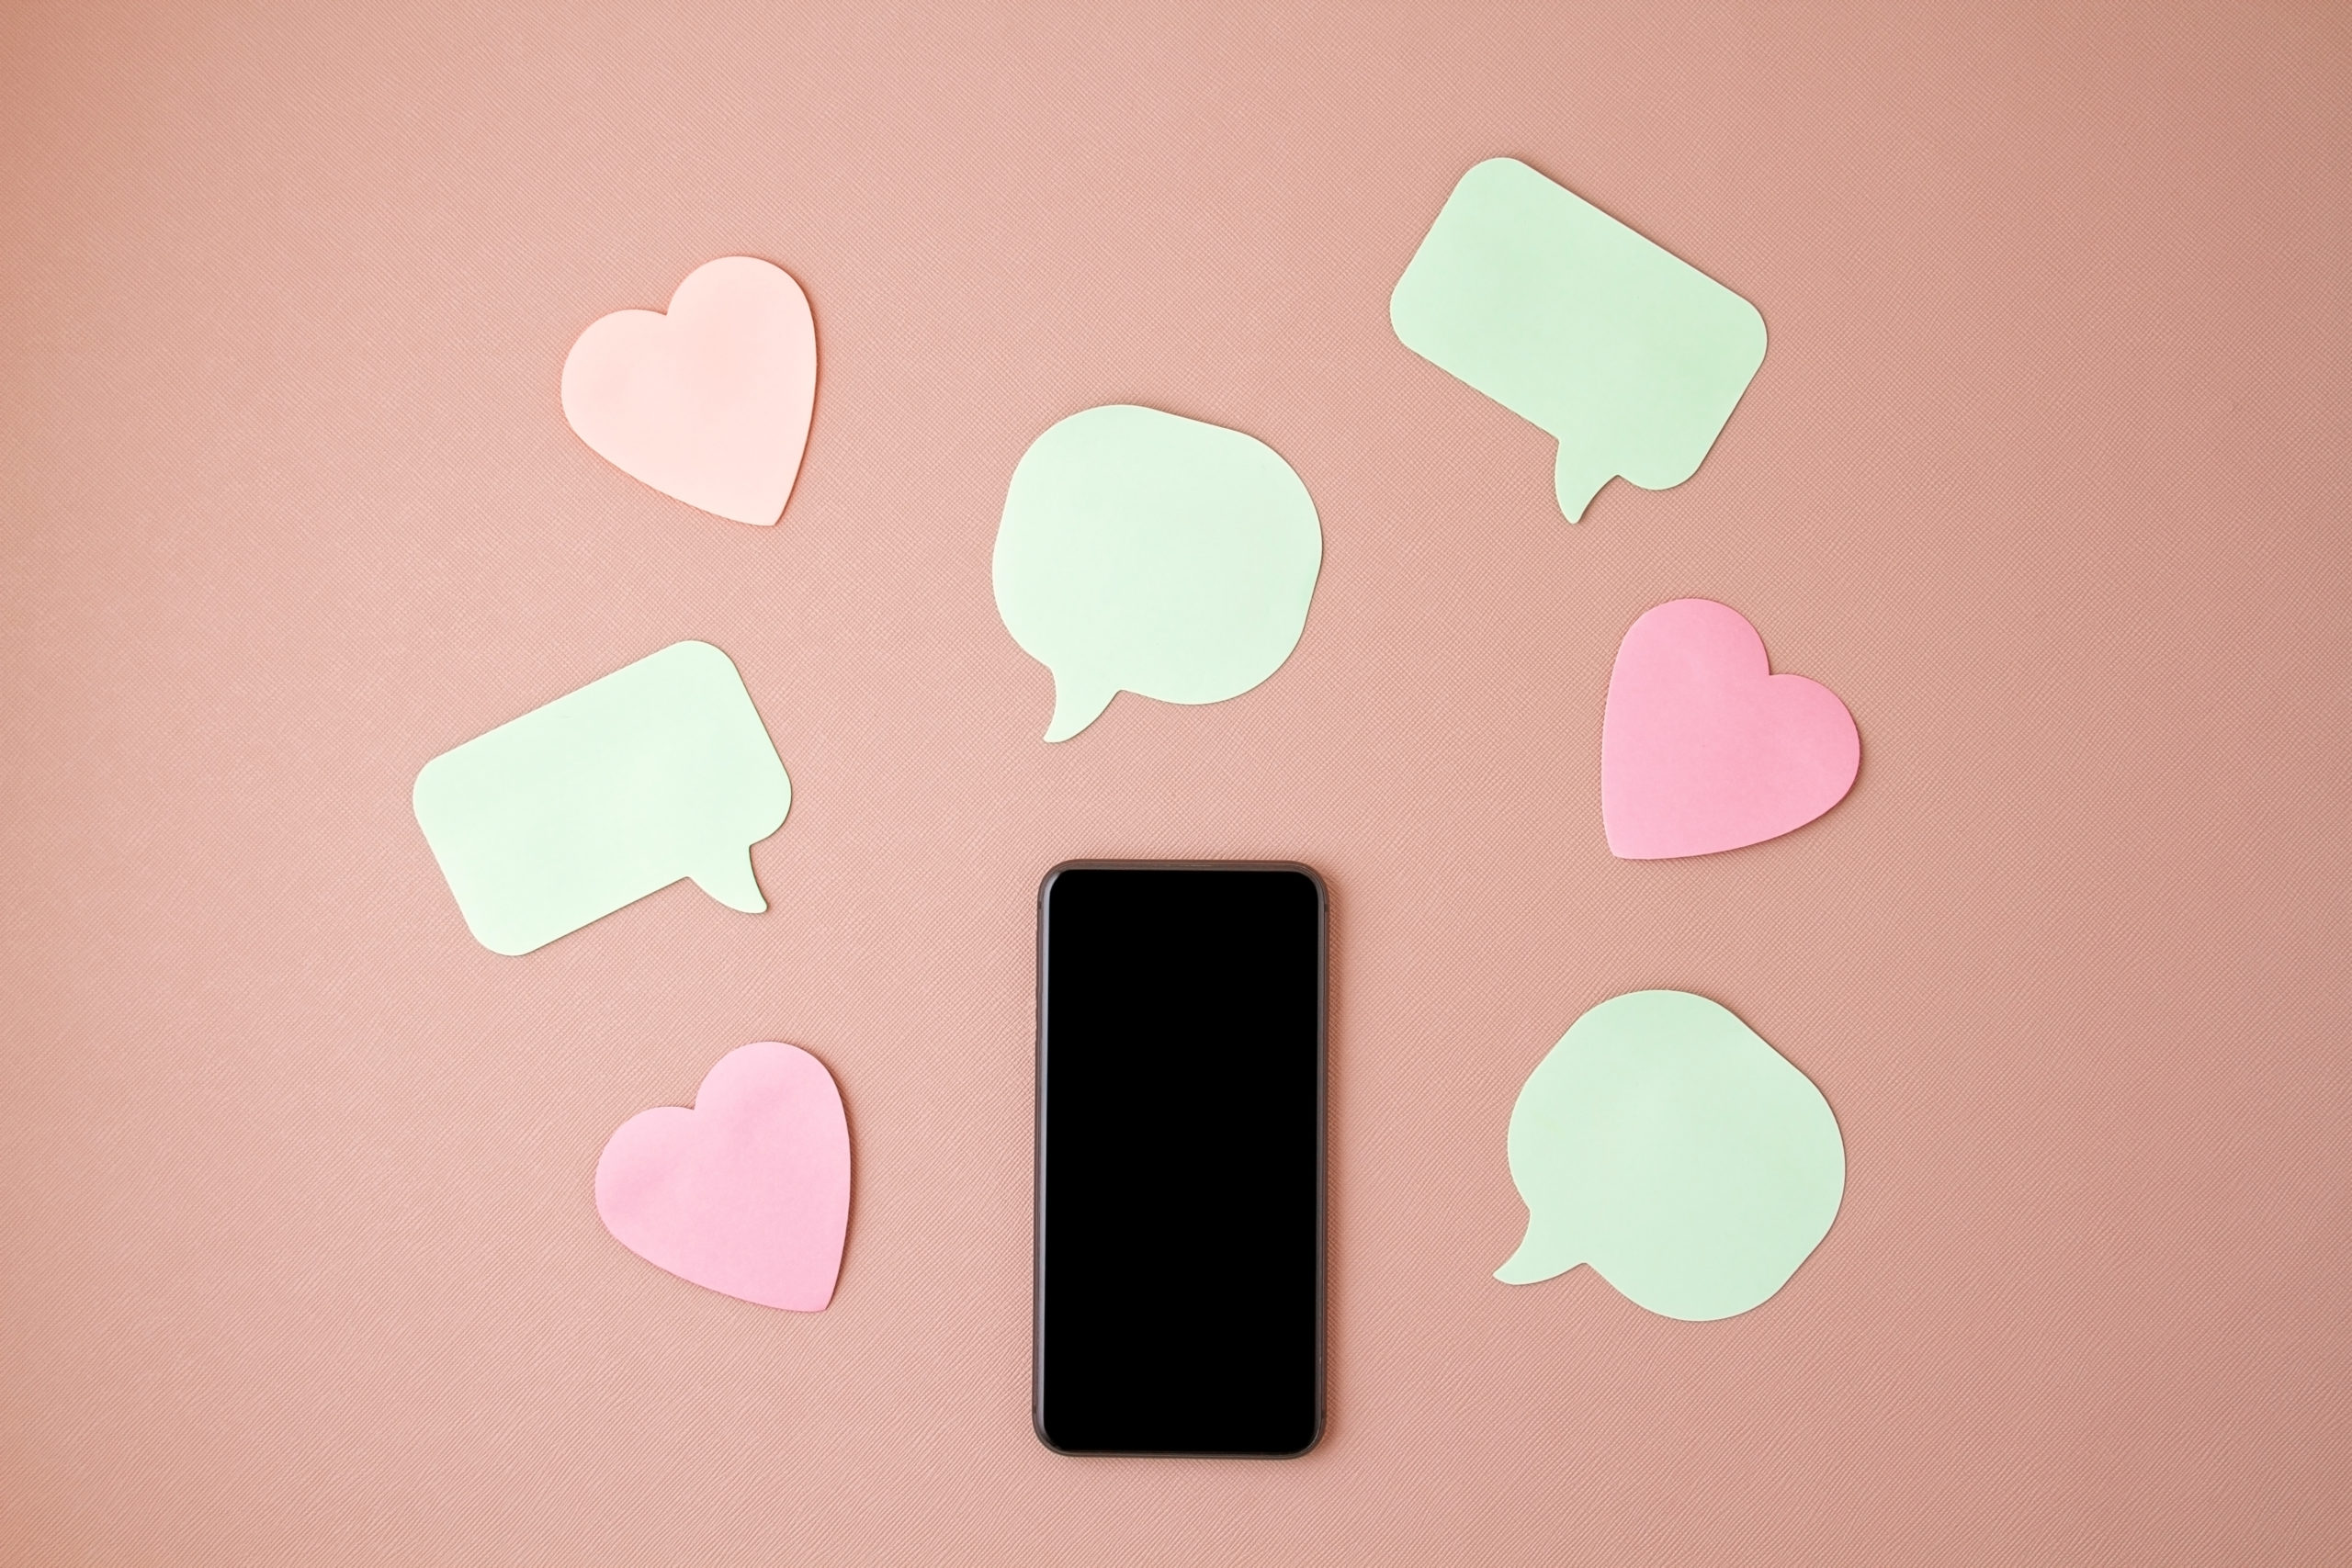 Mockup flat lay with smartphone and hearts and speech bubbles. Social networking, likes, follow, comments, share concept